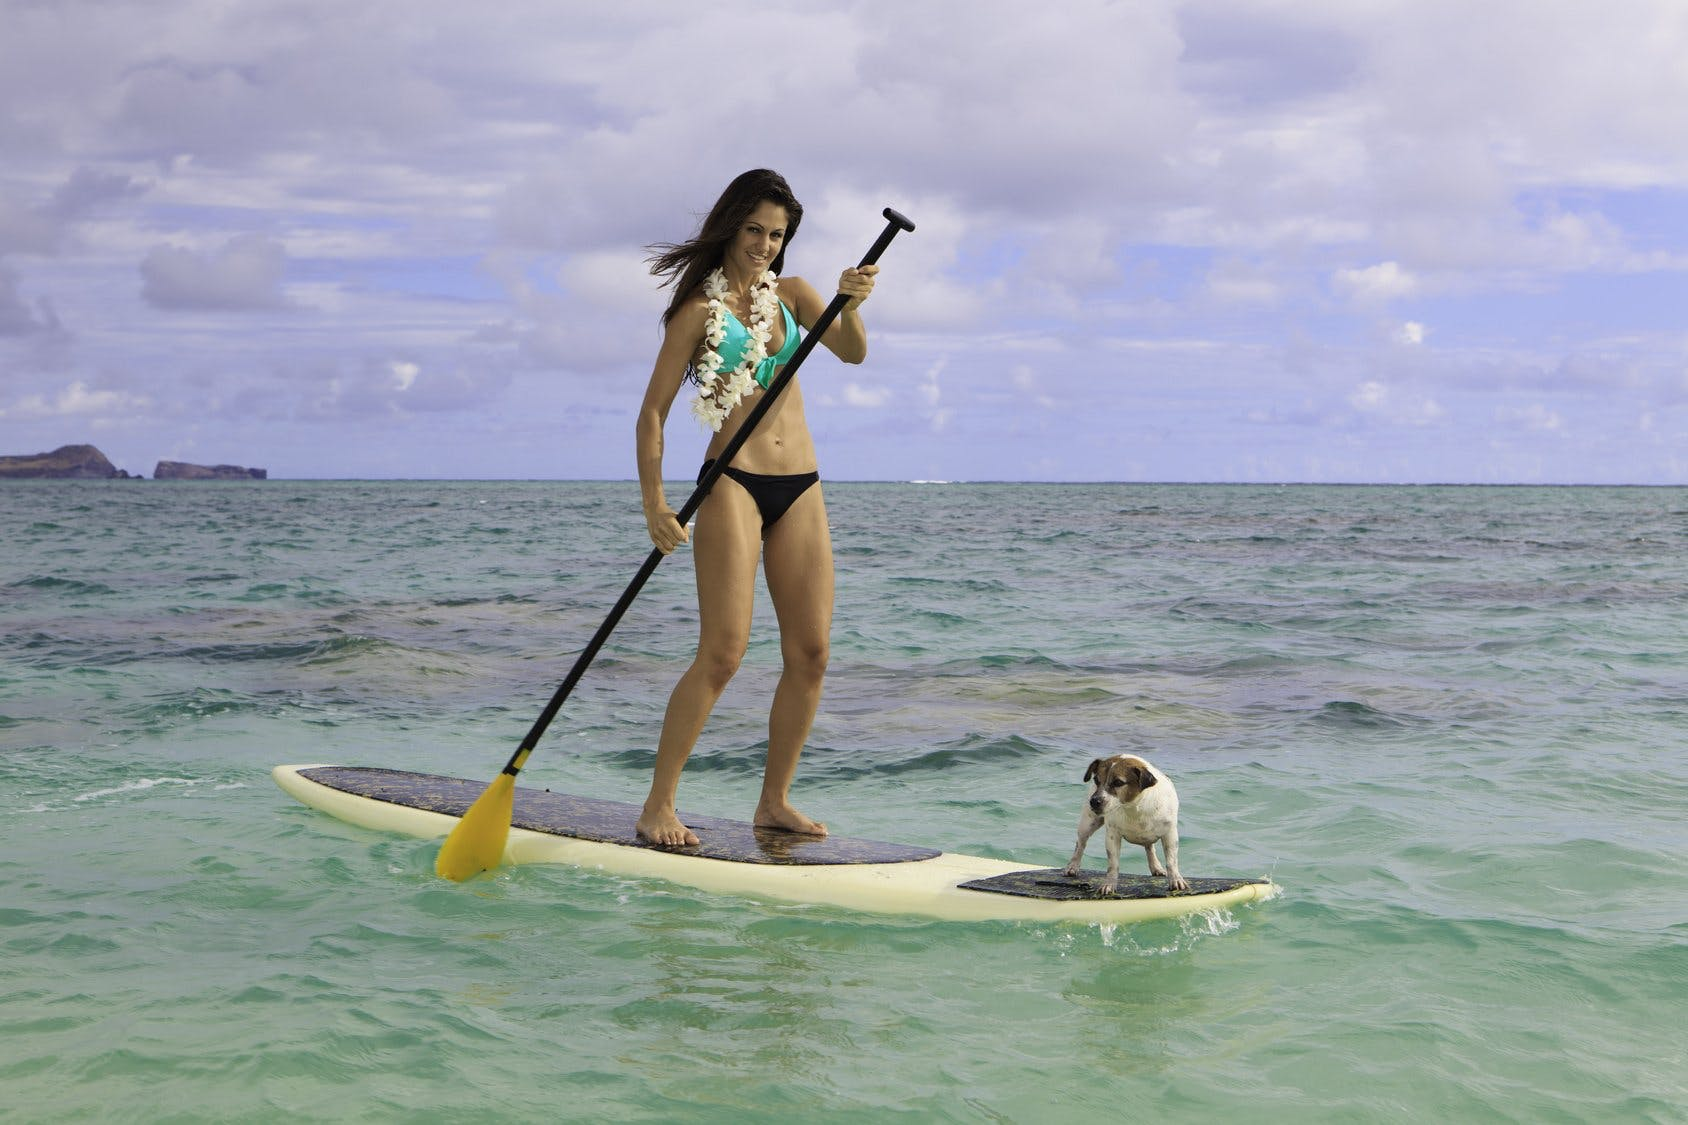 Hawaii – Visting with your pet